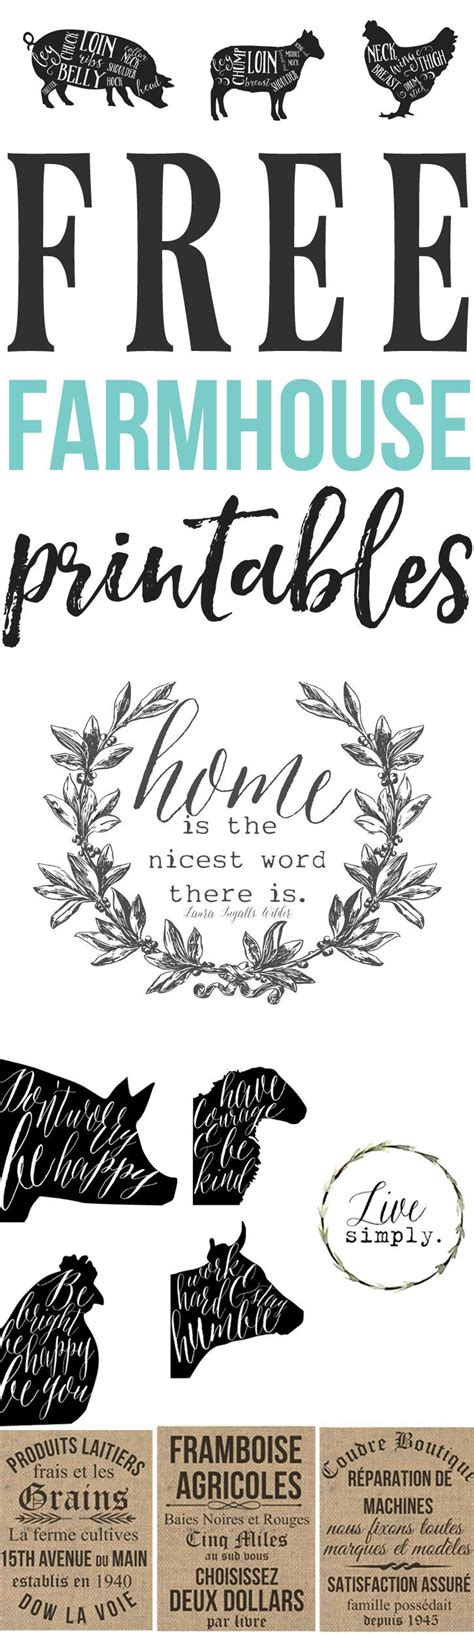 printable home decor signs free farmhouse printables for your home free french